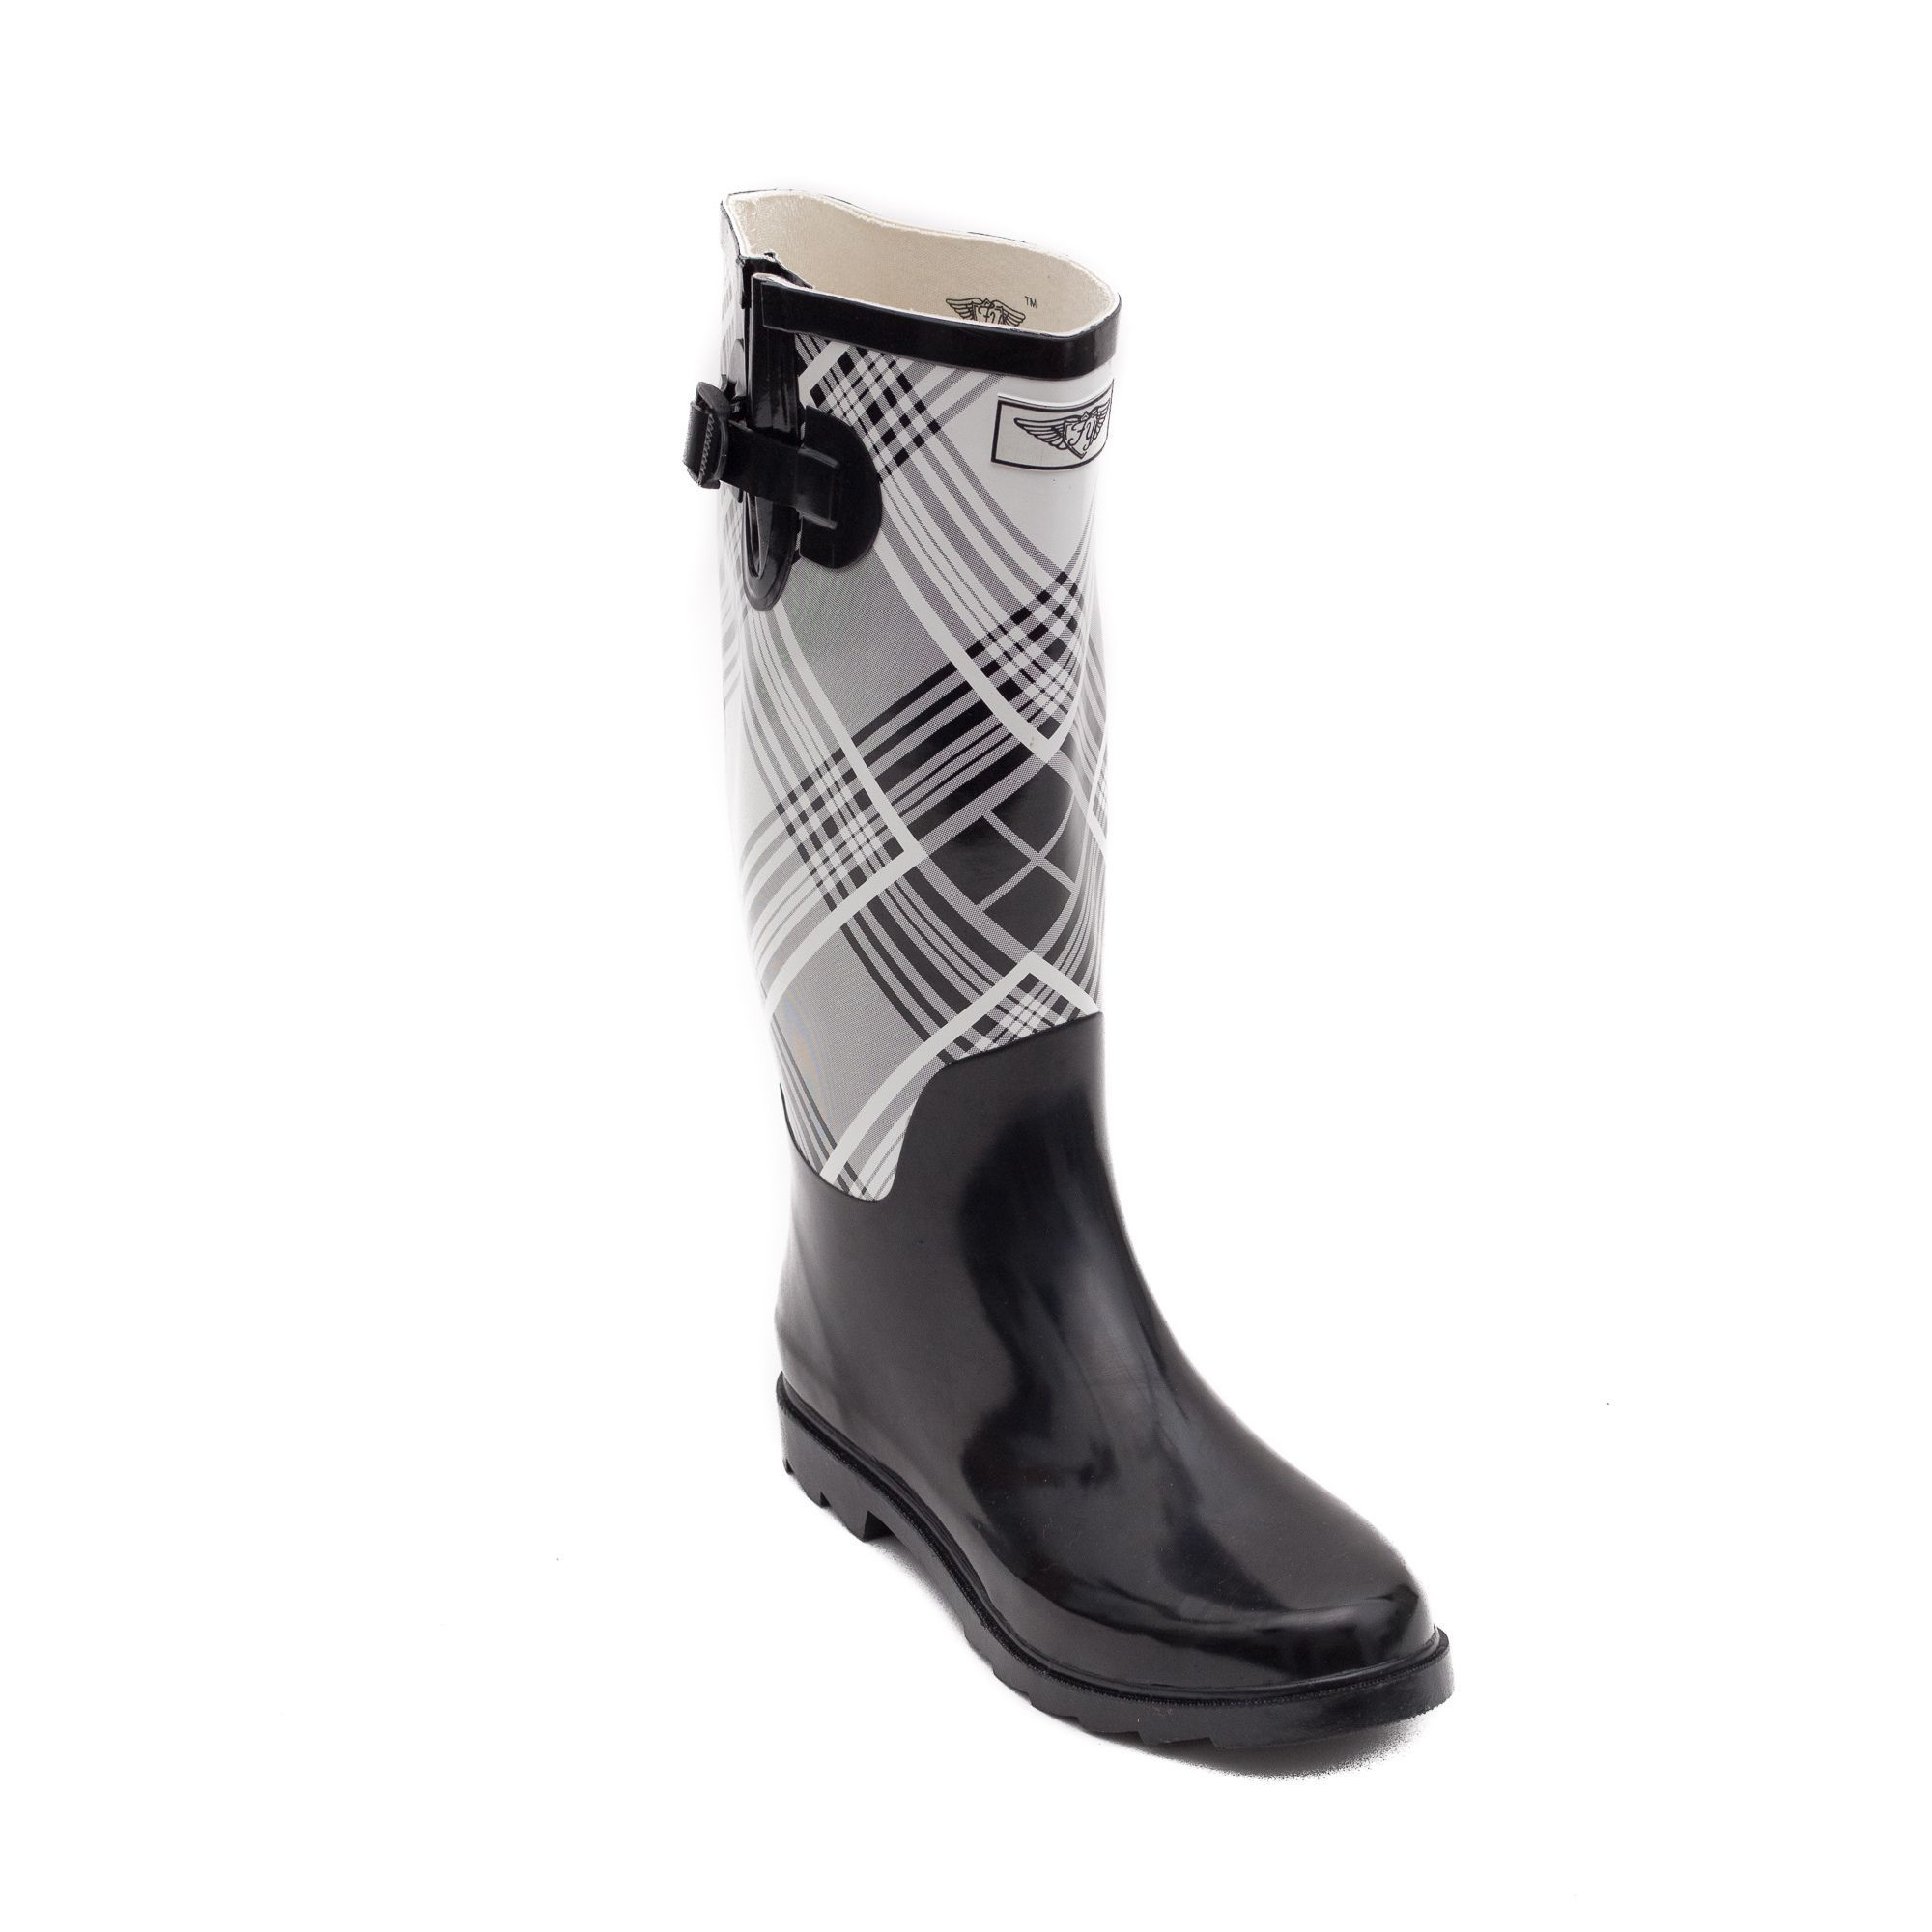 ade95e5cd85 Forever Young Women's and White 14-inch Rain Boots | Products ...